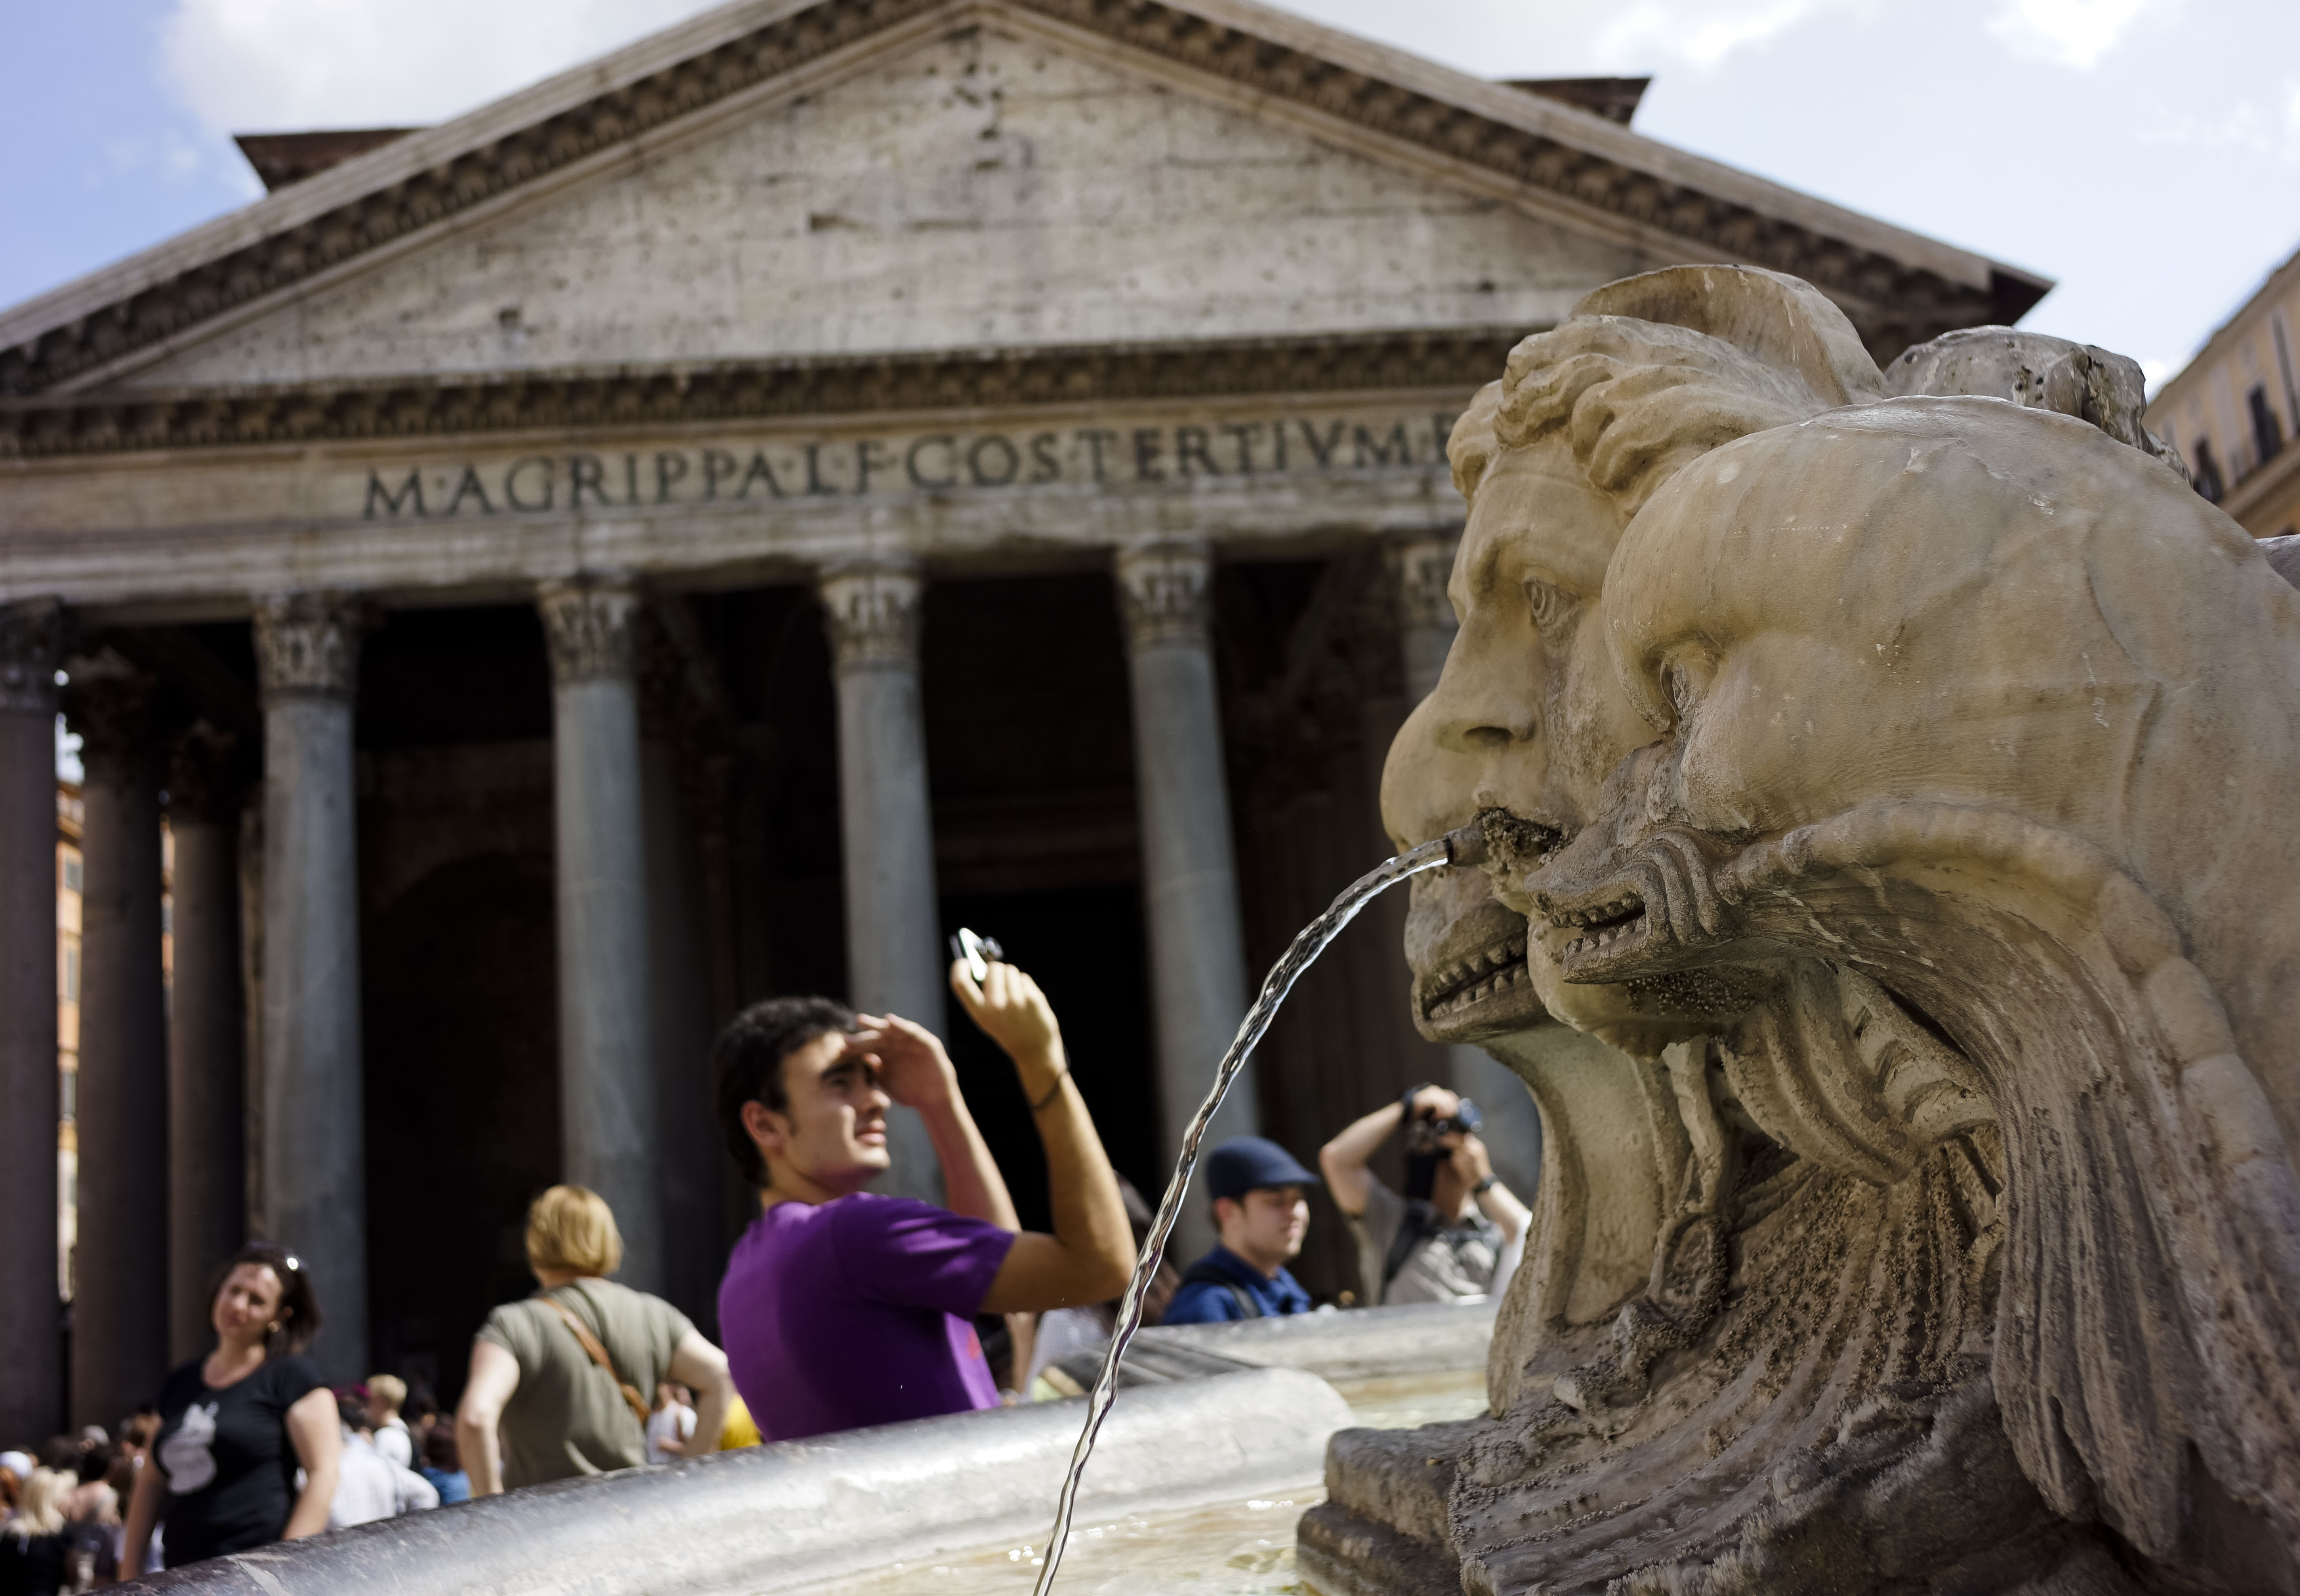 A man is framed by Giacomo Della Porta's 16th century fountain in Piazza della Rotonda, Rome, as he snaps a picture in front of the Pantheon, Friday, June 28, 2013. The Pantheon was built under Emperor Augustus between 27 and 25 b.C., to celebrate all the gods worshipped in Ancient Rome. (AP Photo, Domenico Stinellis)